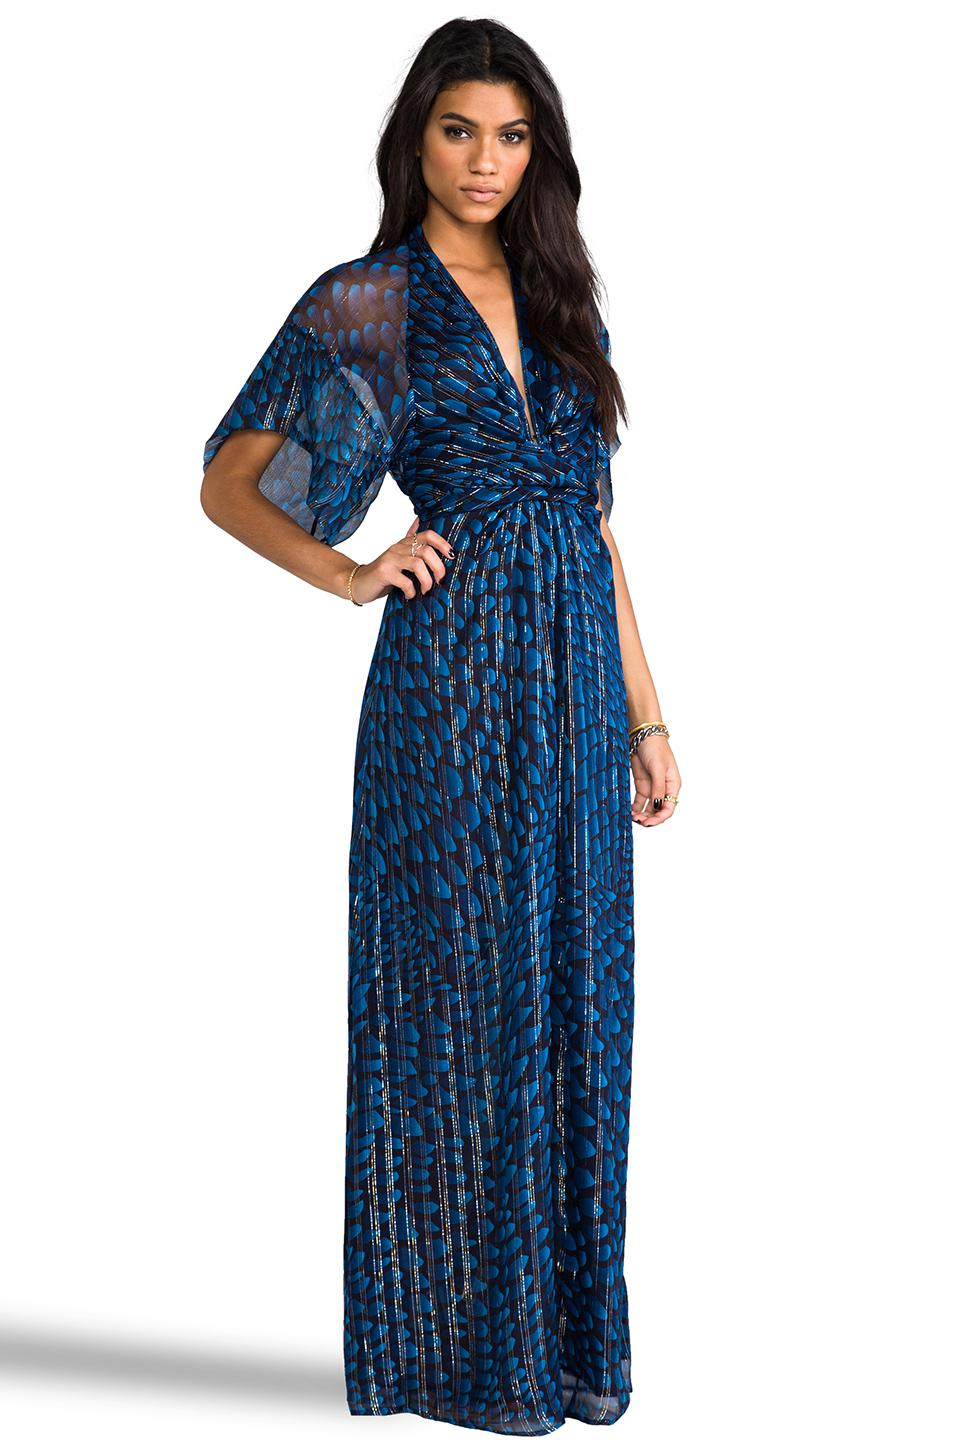 Can Short Girl Wear Maxi Dress - Make Your Life Special